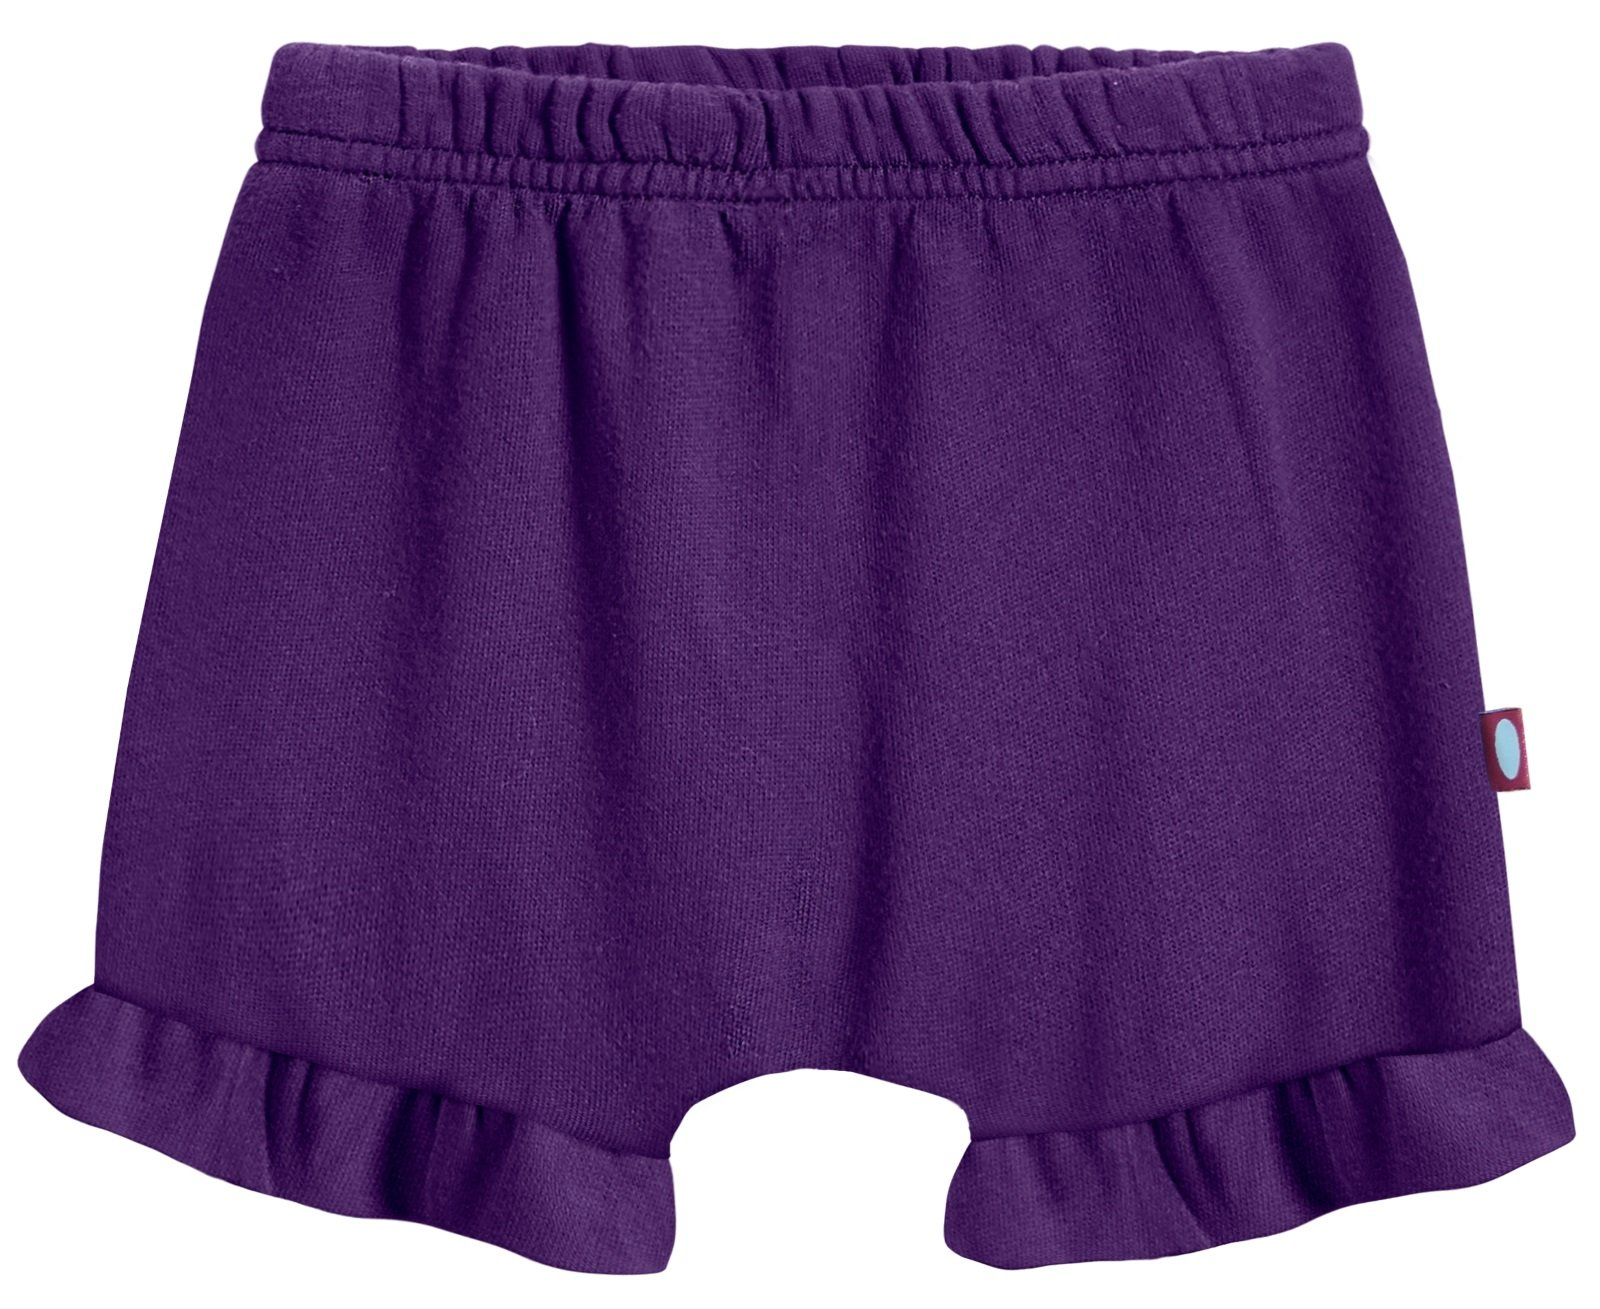 City Threads Baby Girls' and Boys' Ruffled Diaper Covers Bloomers Soft Cotton Fashionable Cute, Purple, NB